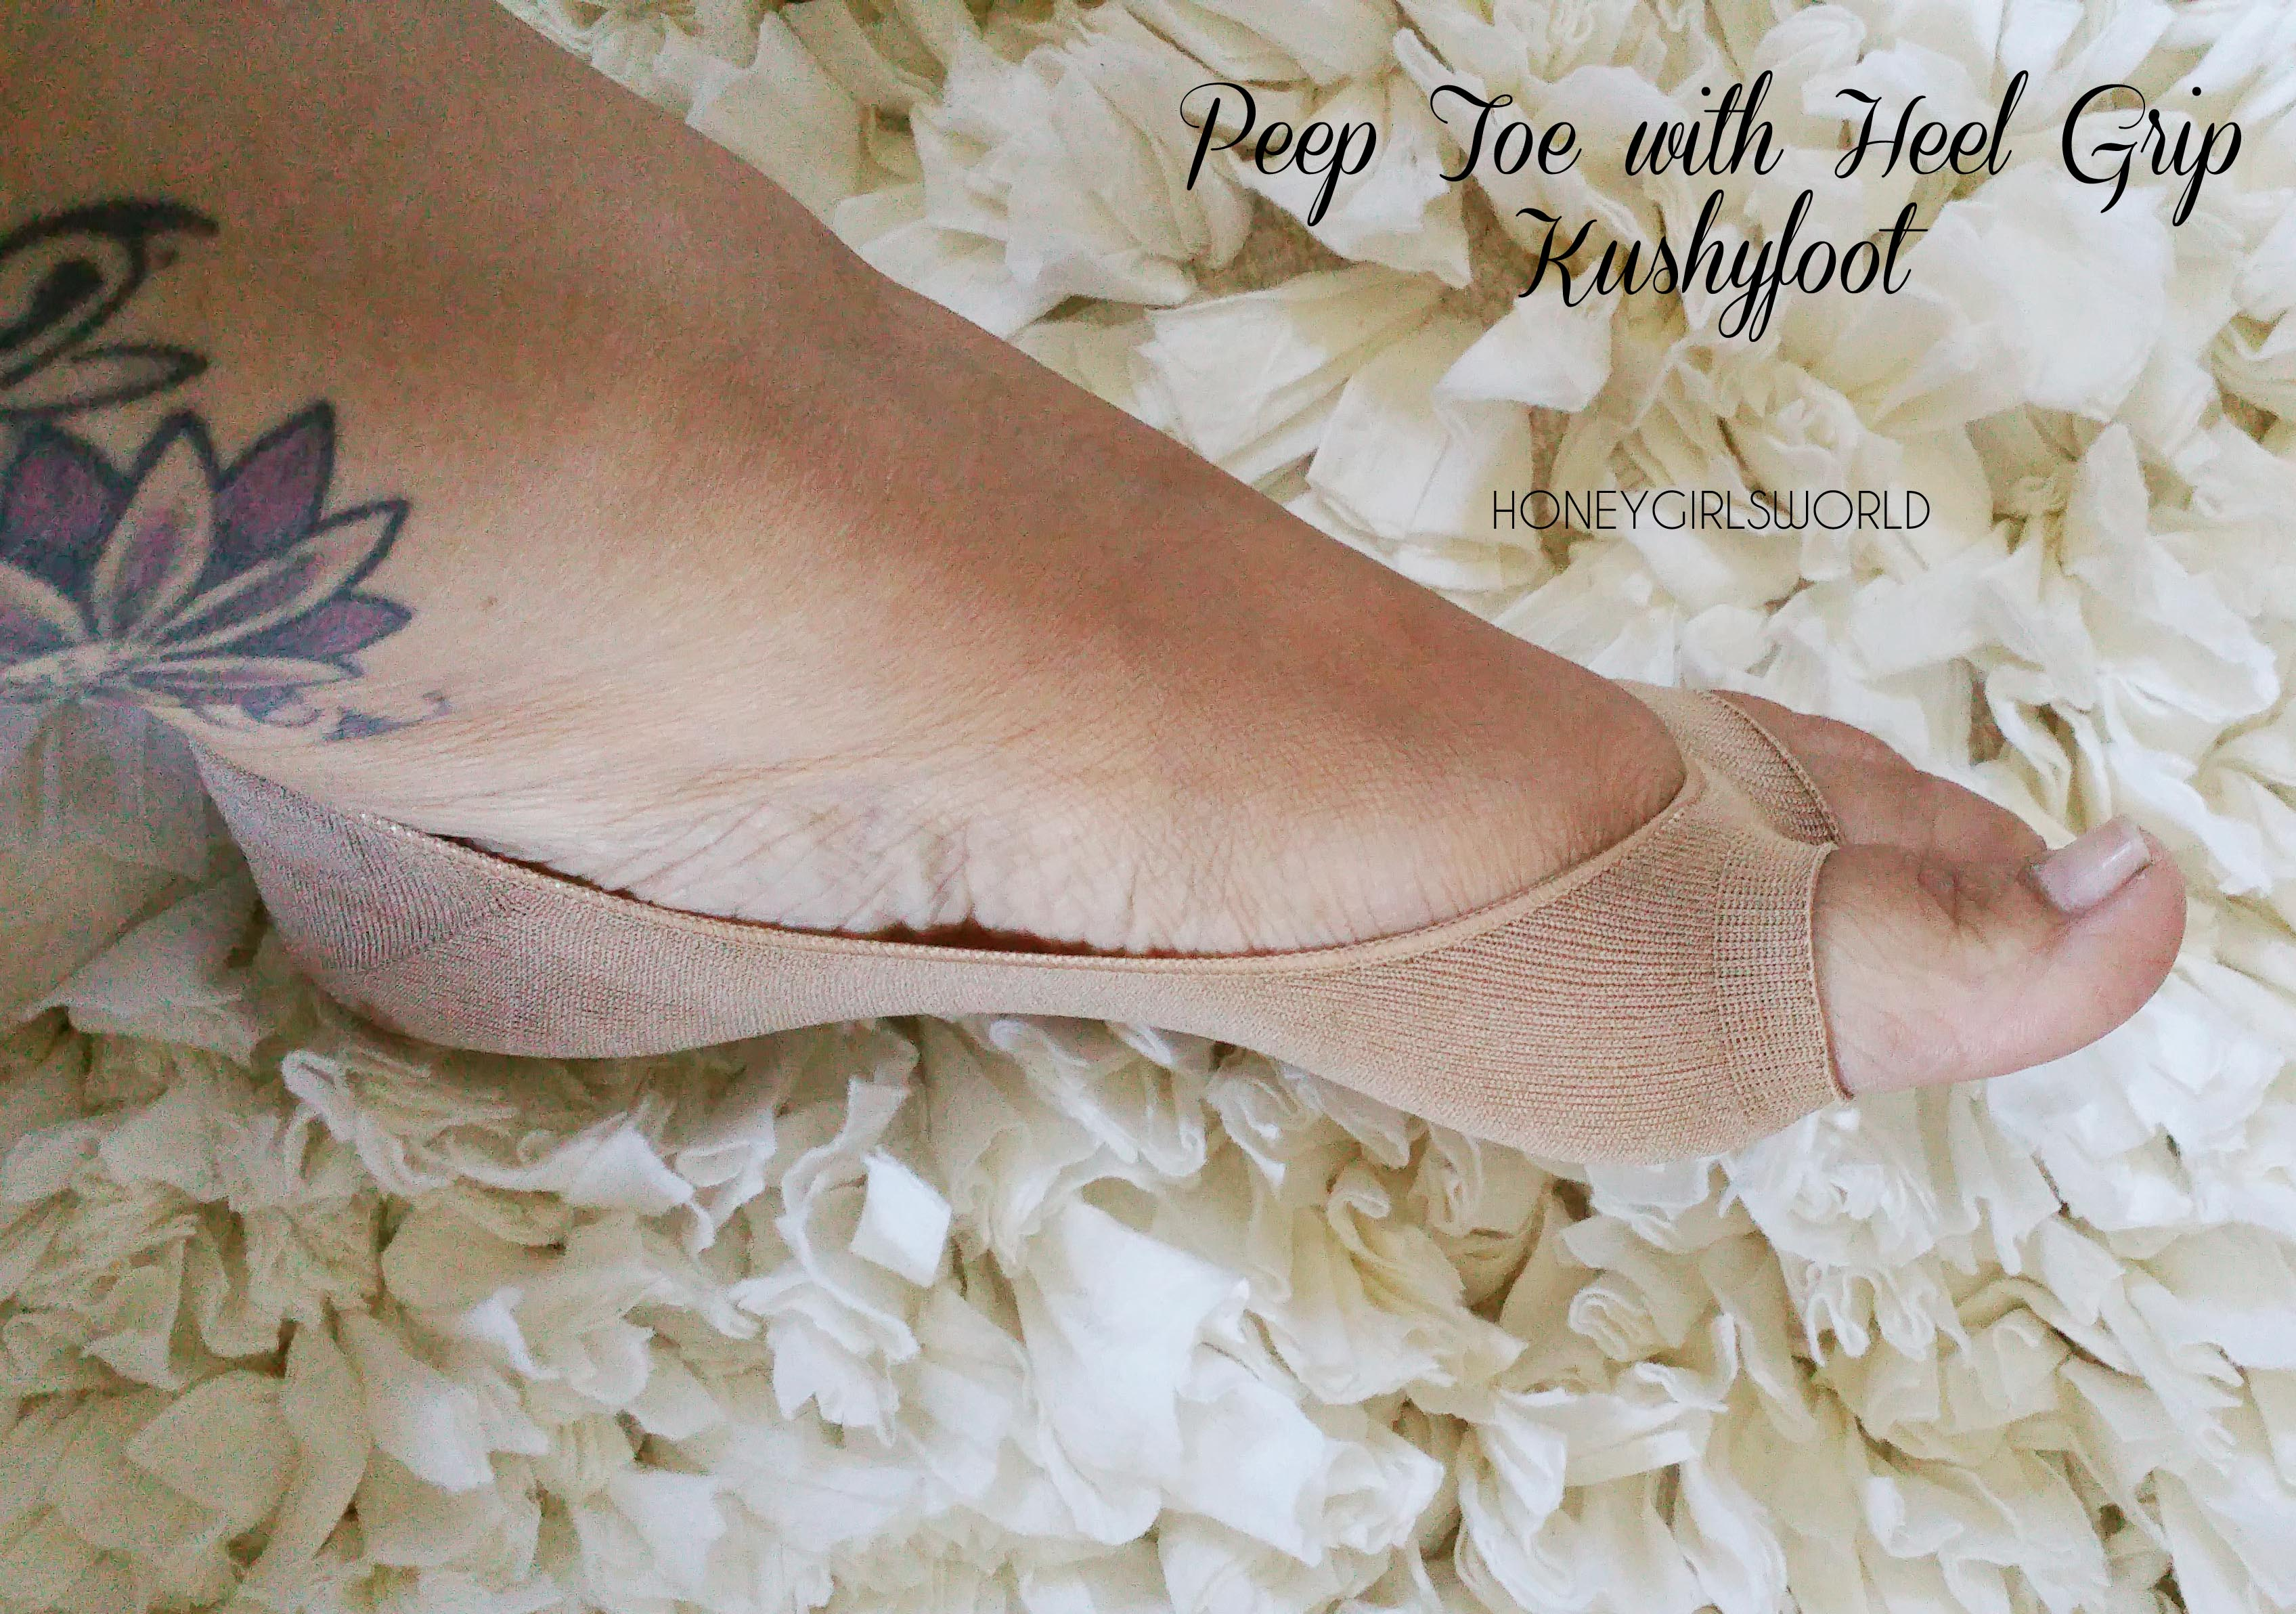 Komfy Kozy Kushyfoot - Massaging Your Feet With Every Step